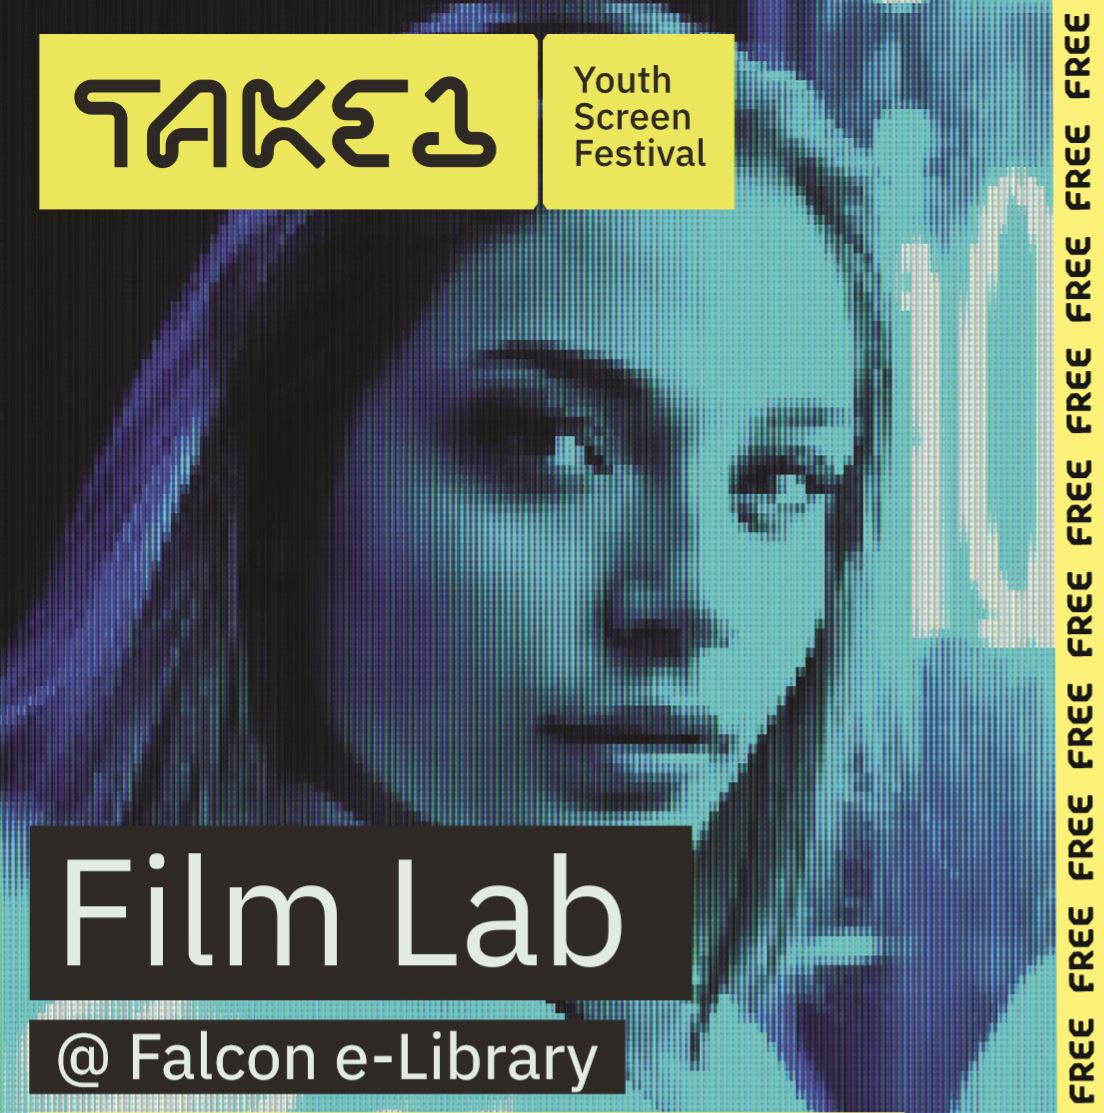 Film Lab Session 4